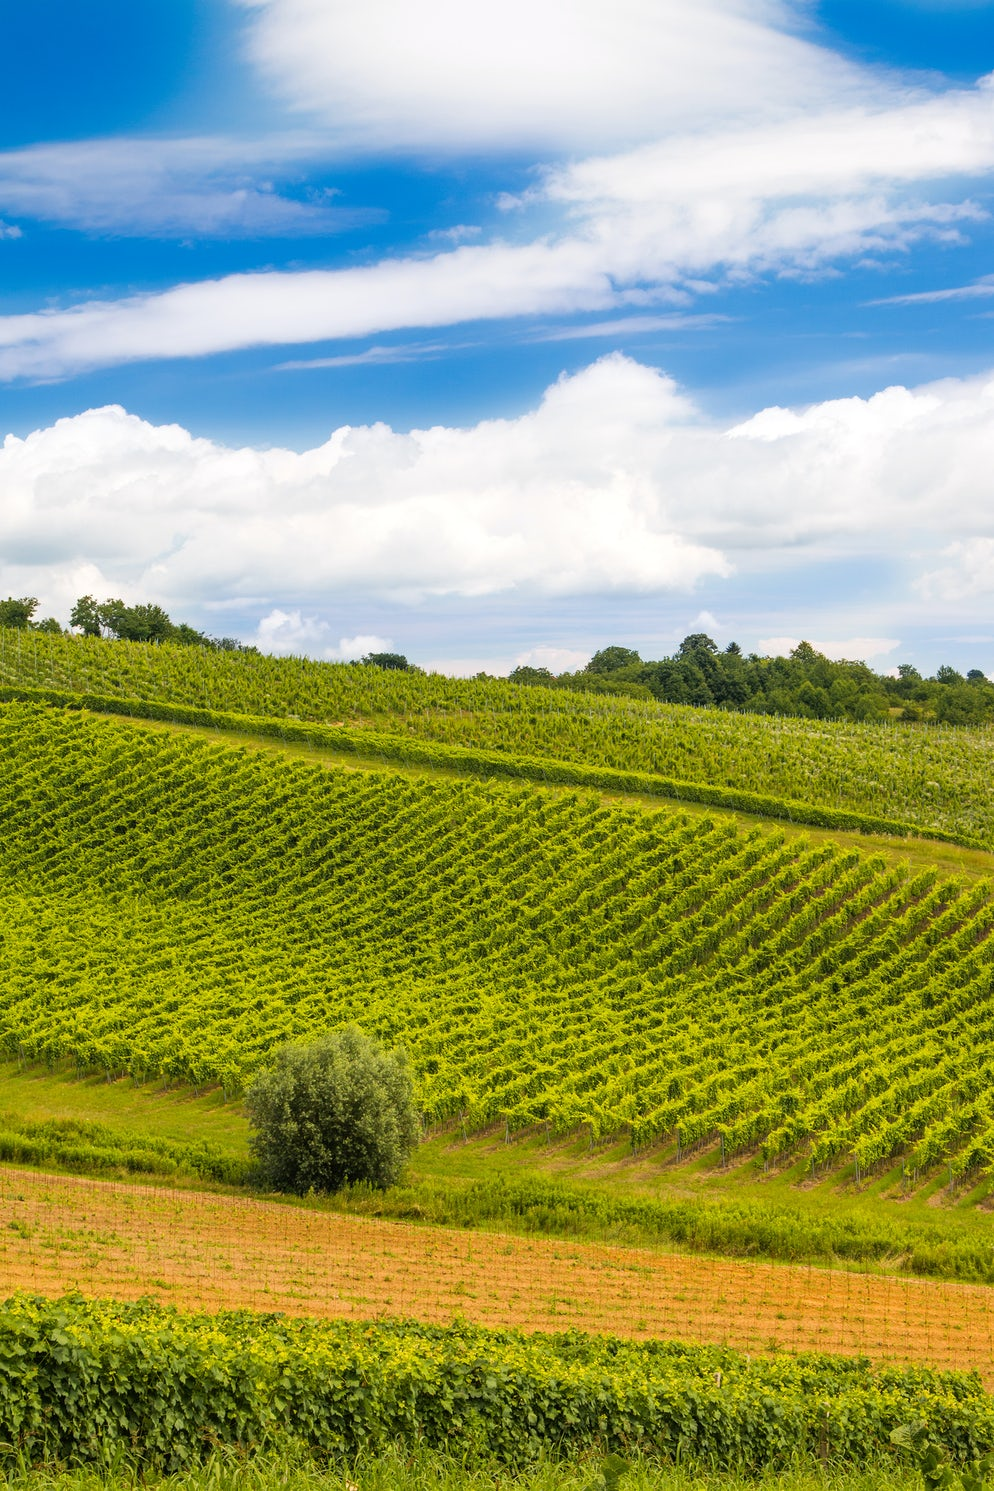 Slavonian vineyard; Photo © credits to iStockphoto/iascic